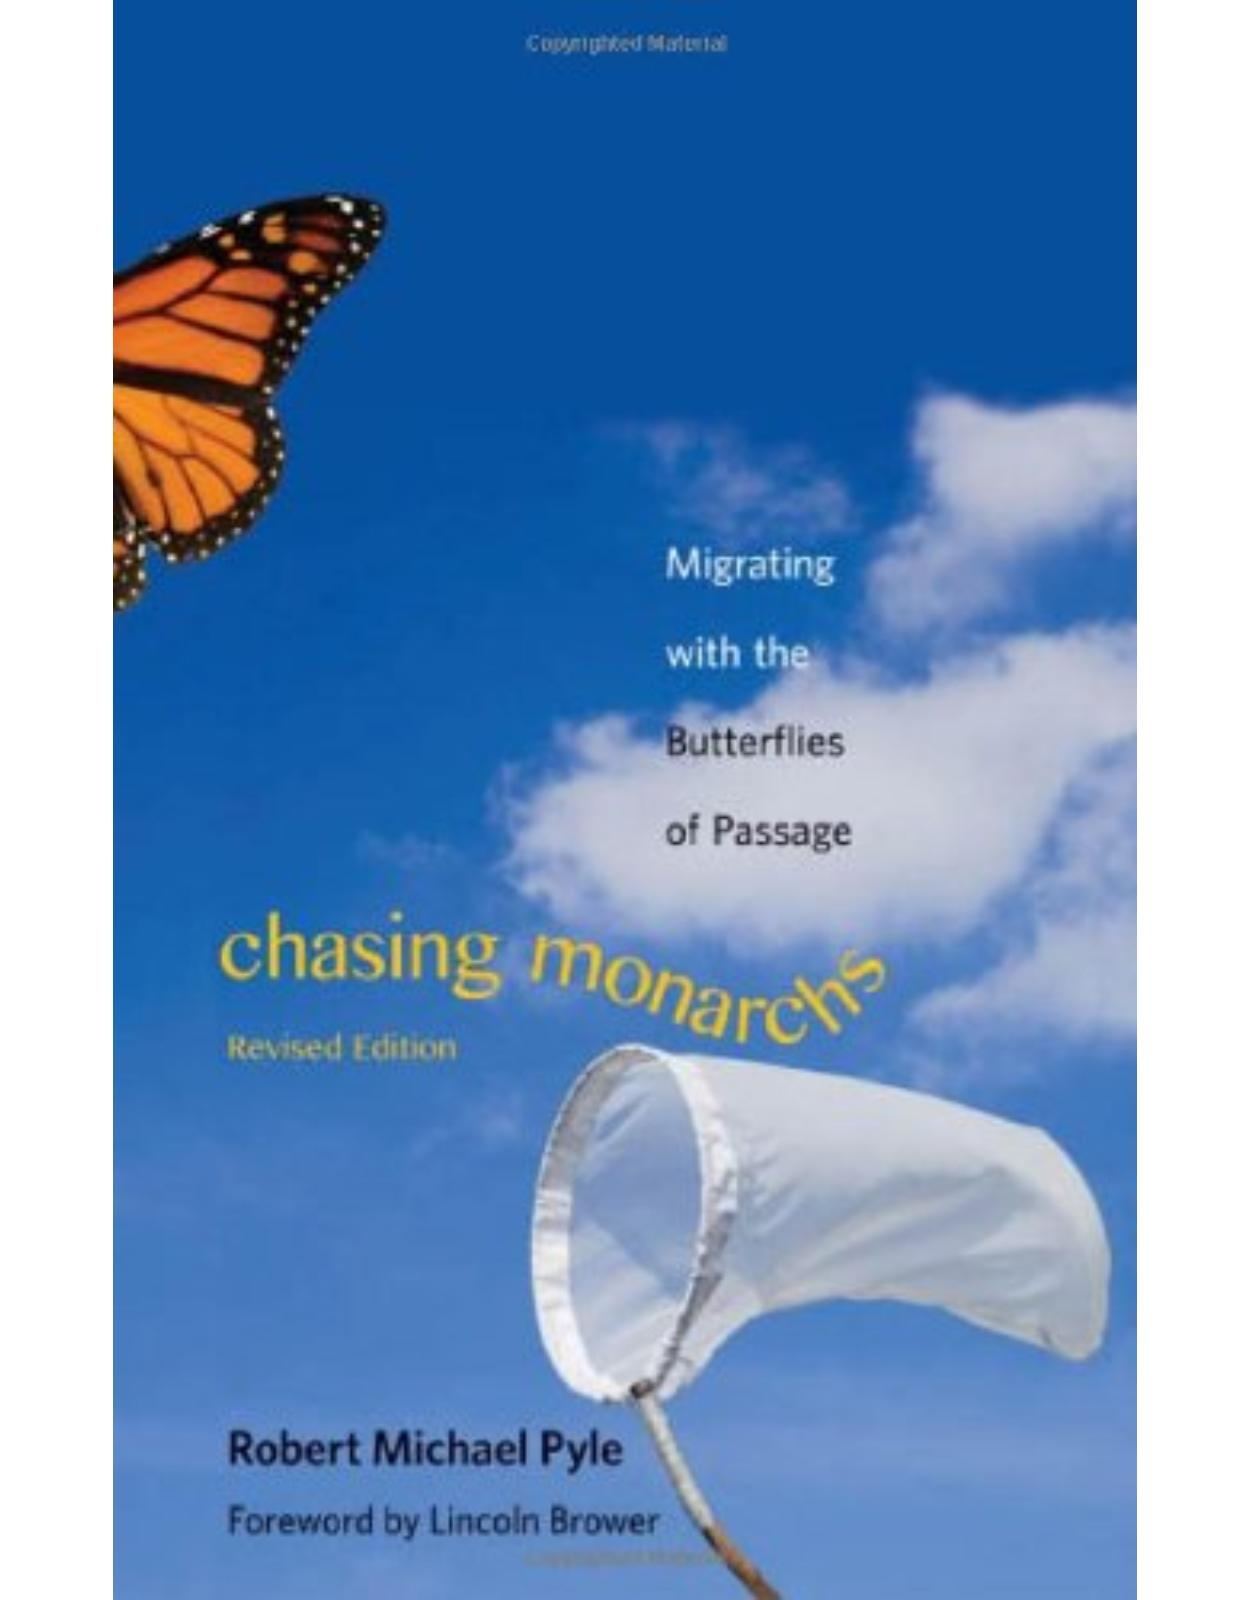 Chasing Monarchs. Migrating with the Butterflies of Passage